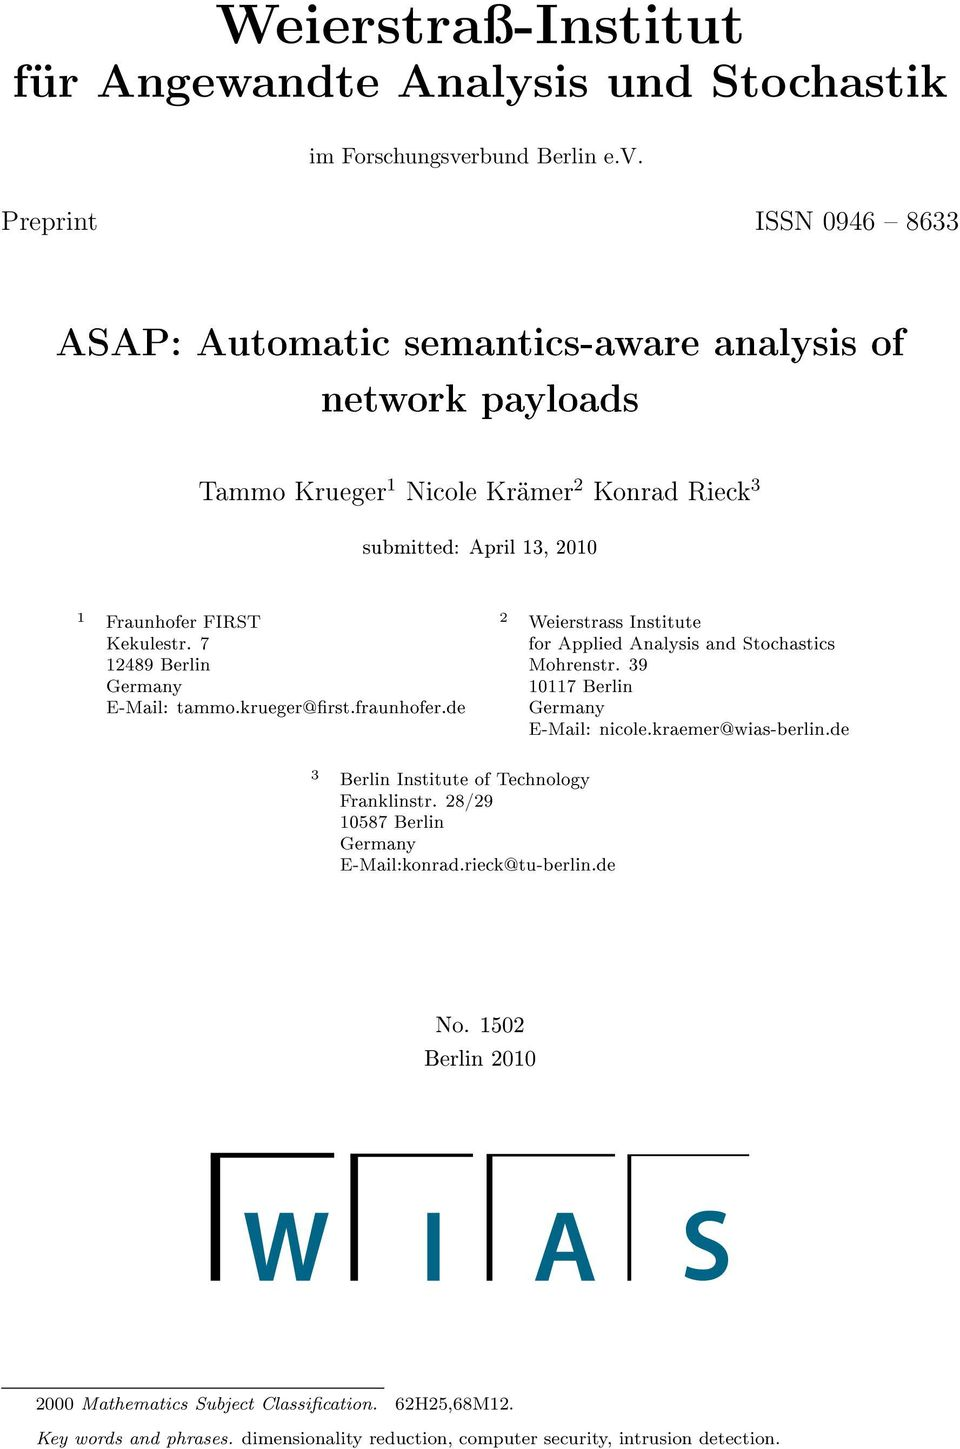 Preprint ISSN 0946 8633 ASAP: Automatic semantics-aware analysis of network payloads Tammo Krueger 1 Nicole Krämer 2 Konrad Rieck 3 submitted: April 13, 2010 1 Fraunhofer FIRST Kekulestr.